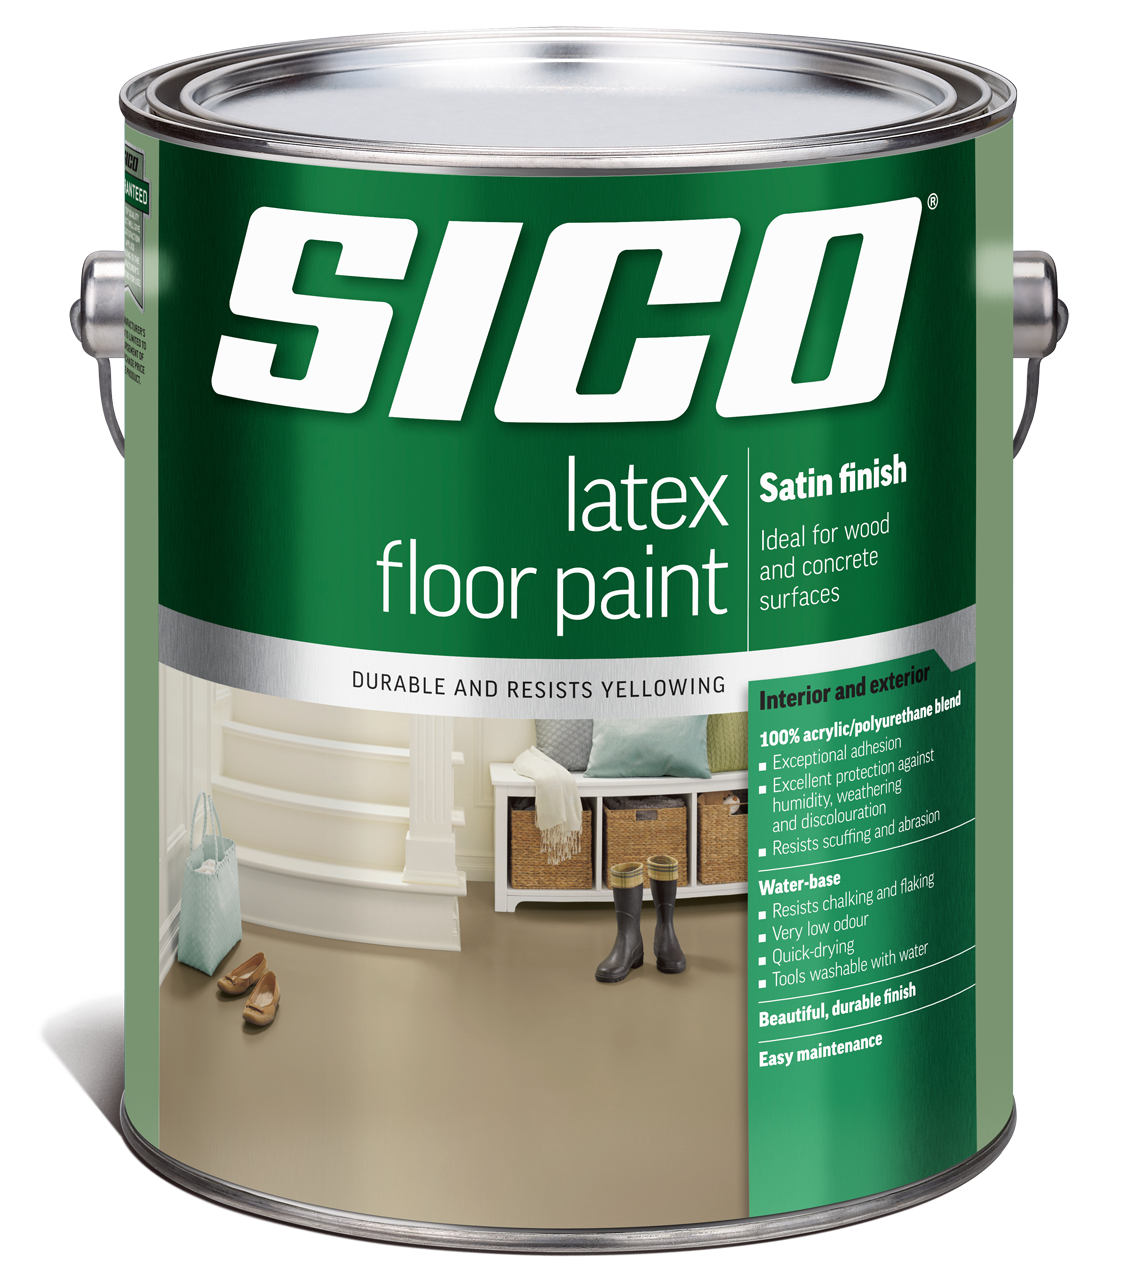 Sico Paint Wm Dyck Amp Sons